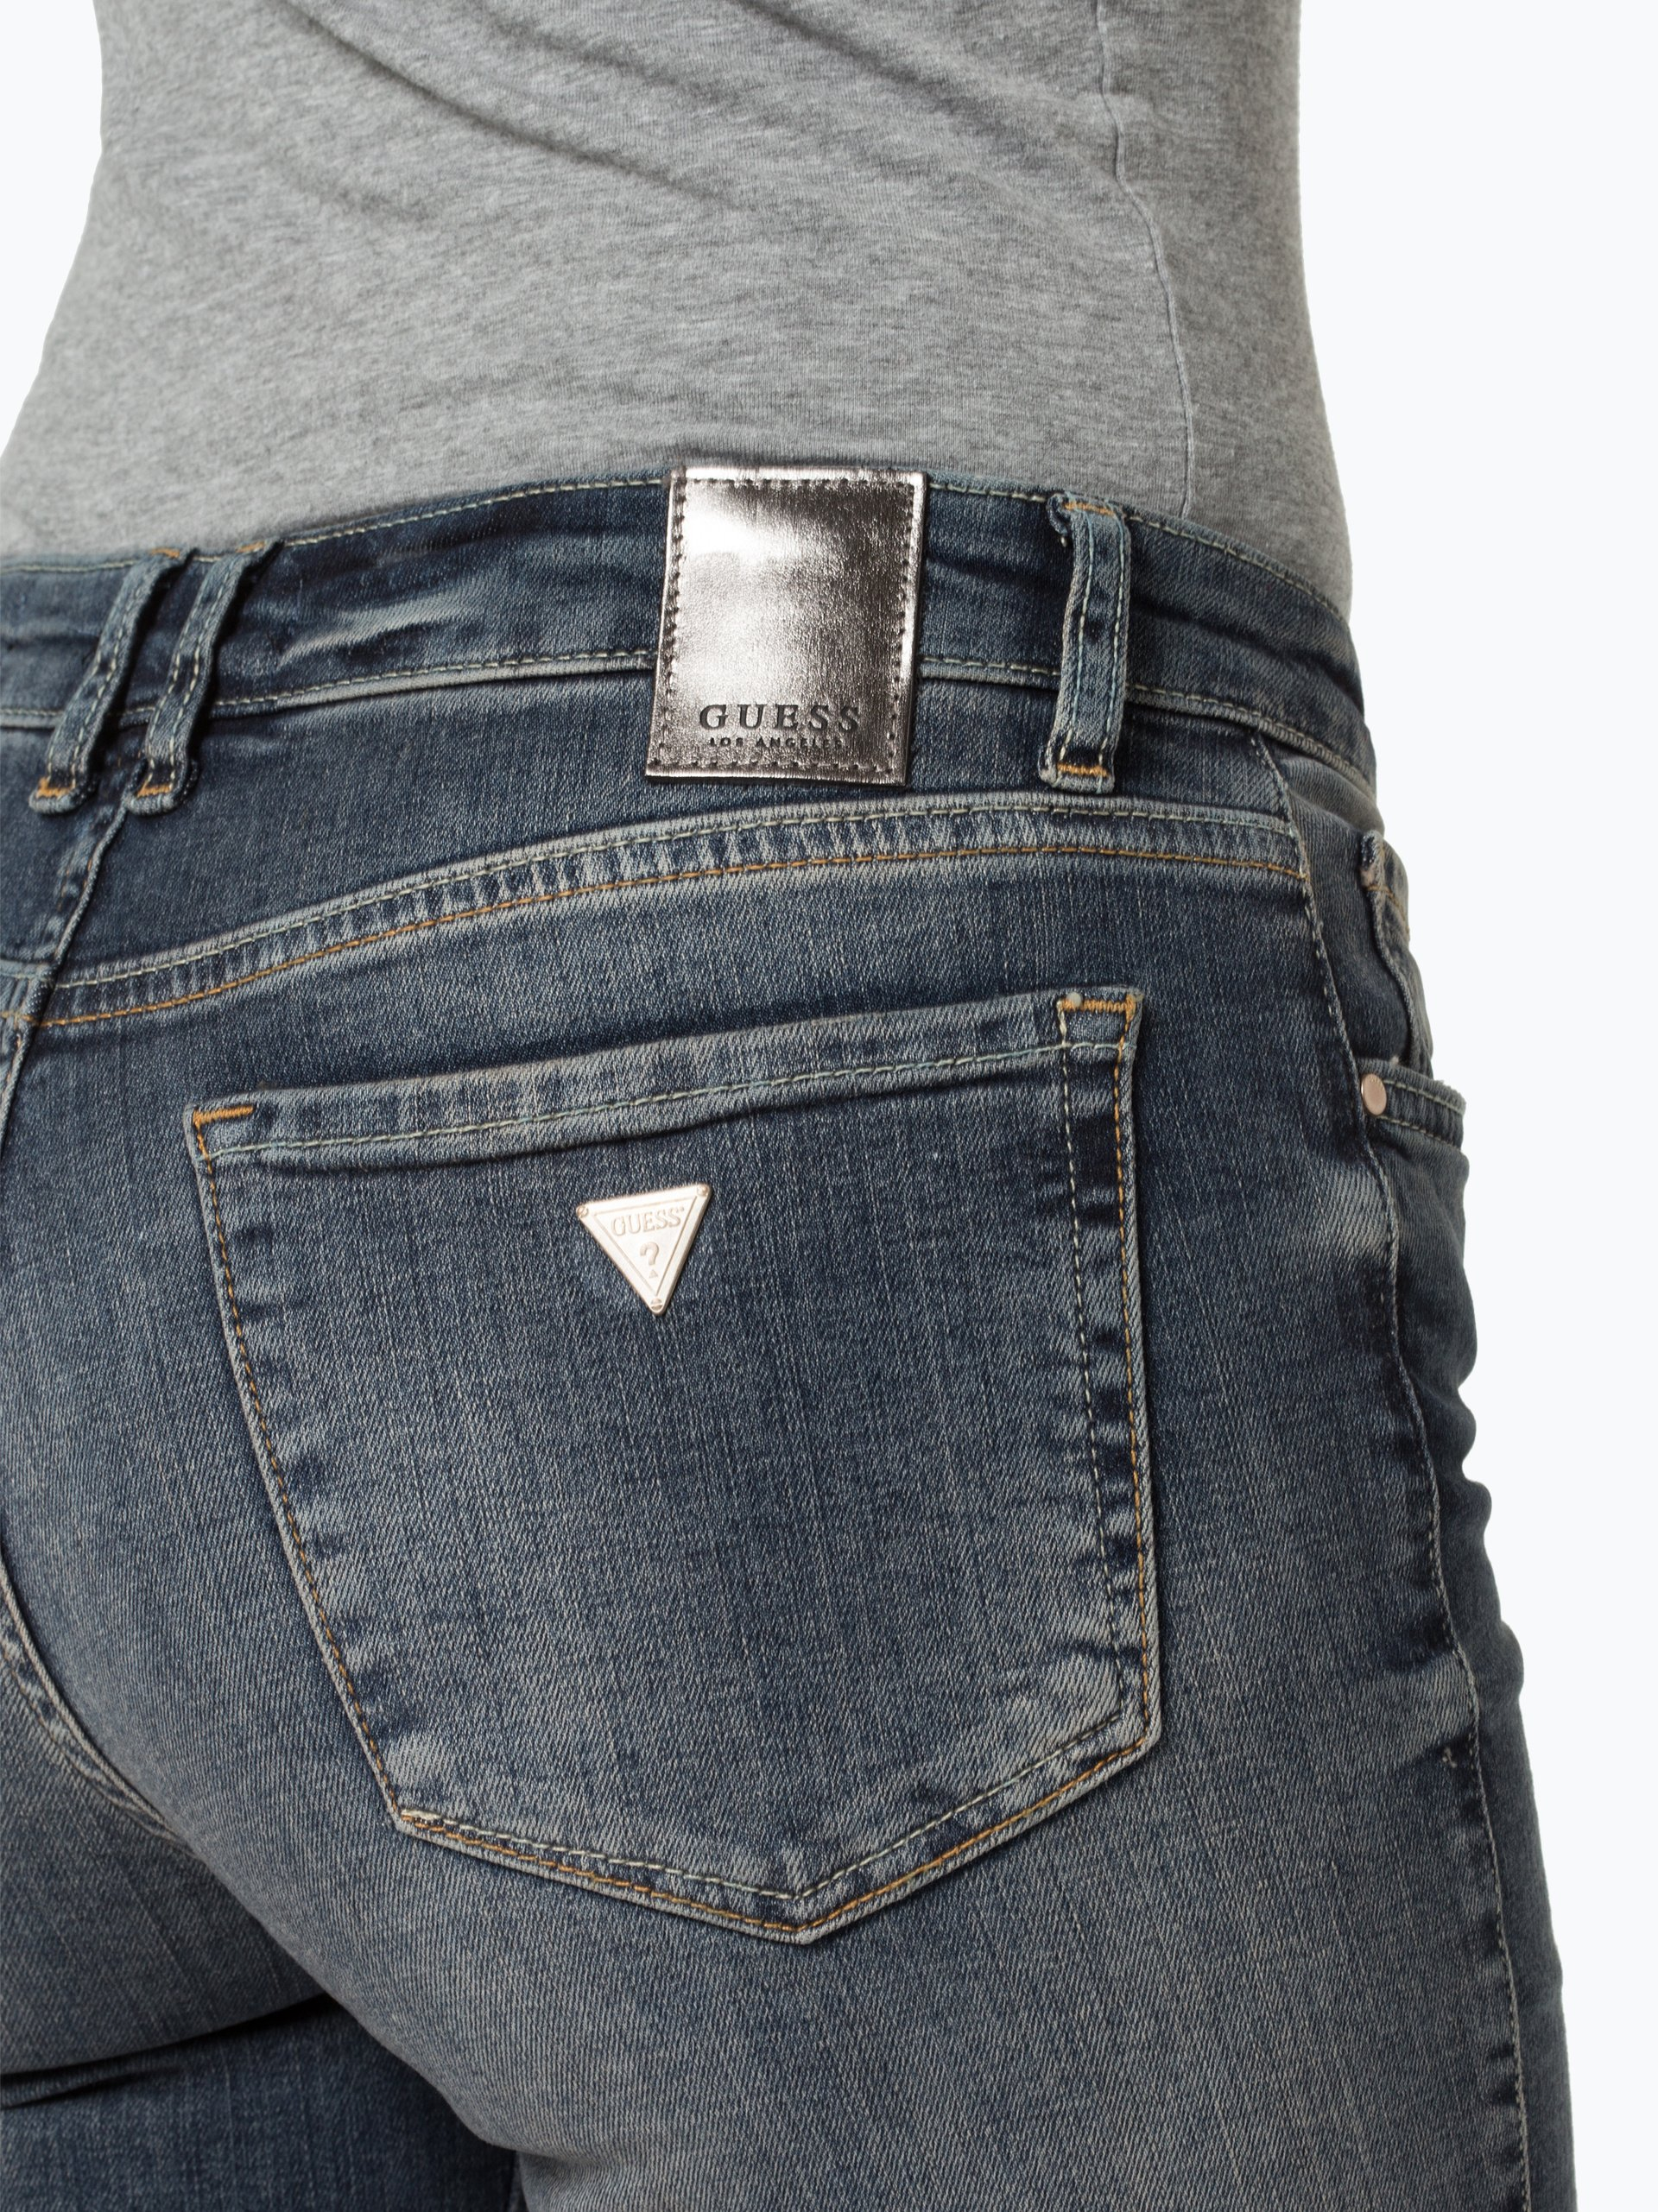 2362d2fbcafe8 Guess Jeans Jeansy damskie – Annette kup online